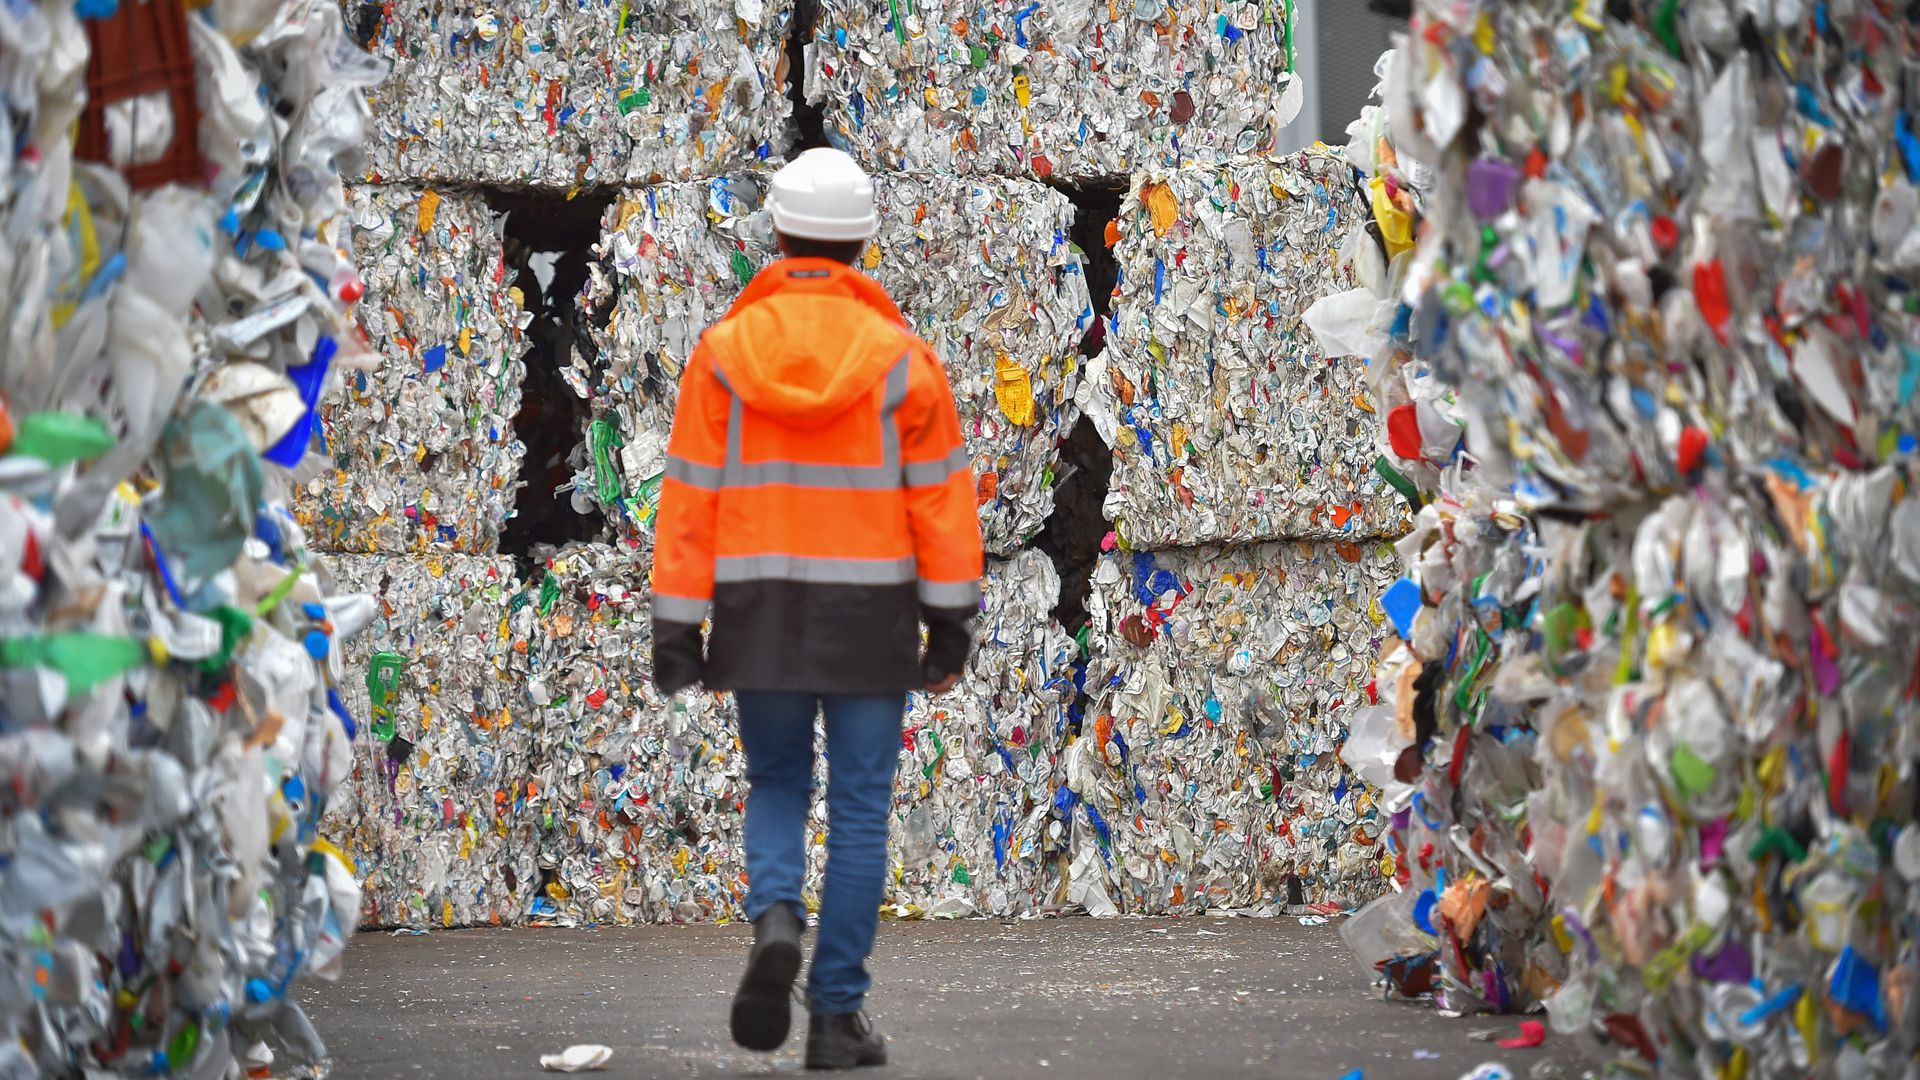 An employee walks through plastic wastes waiting to be recycled at a sorting center in France